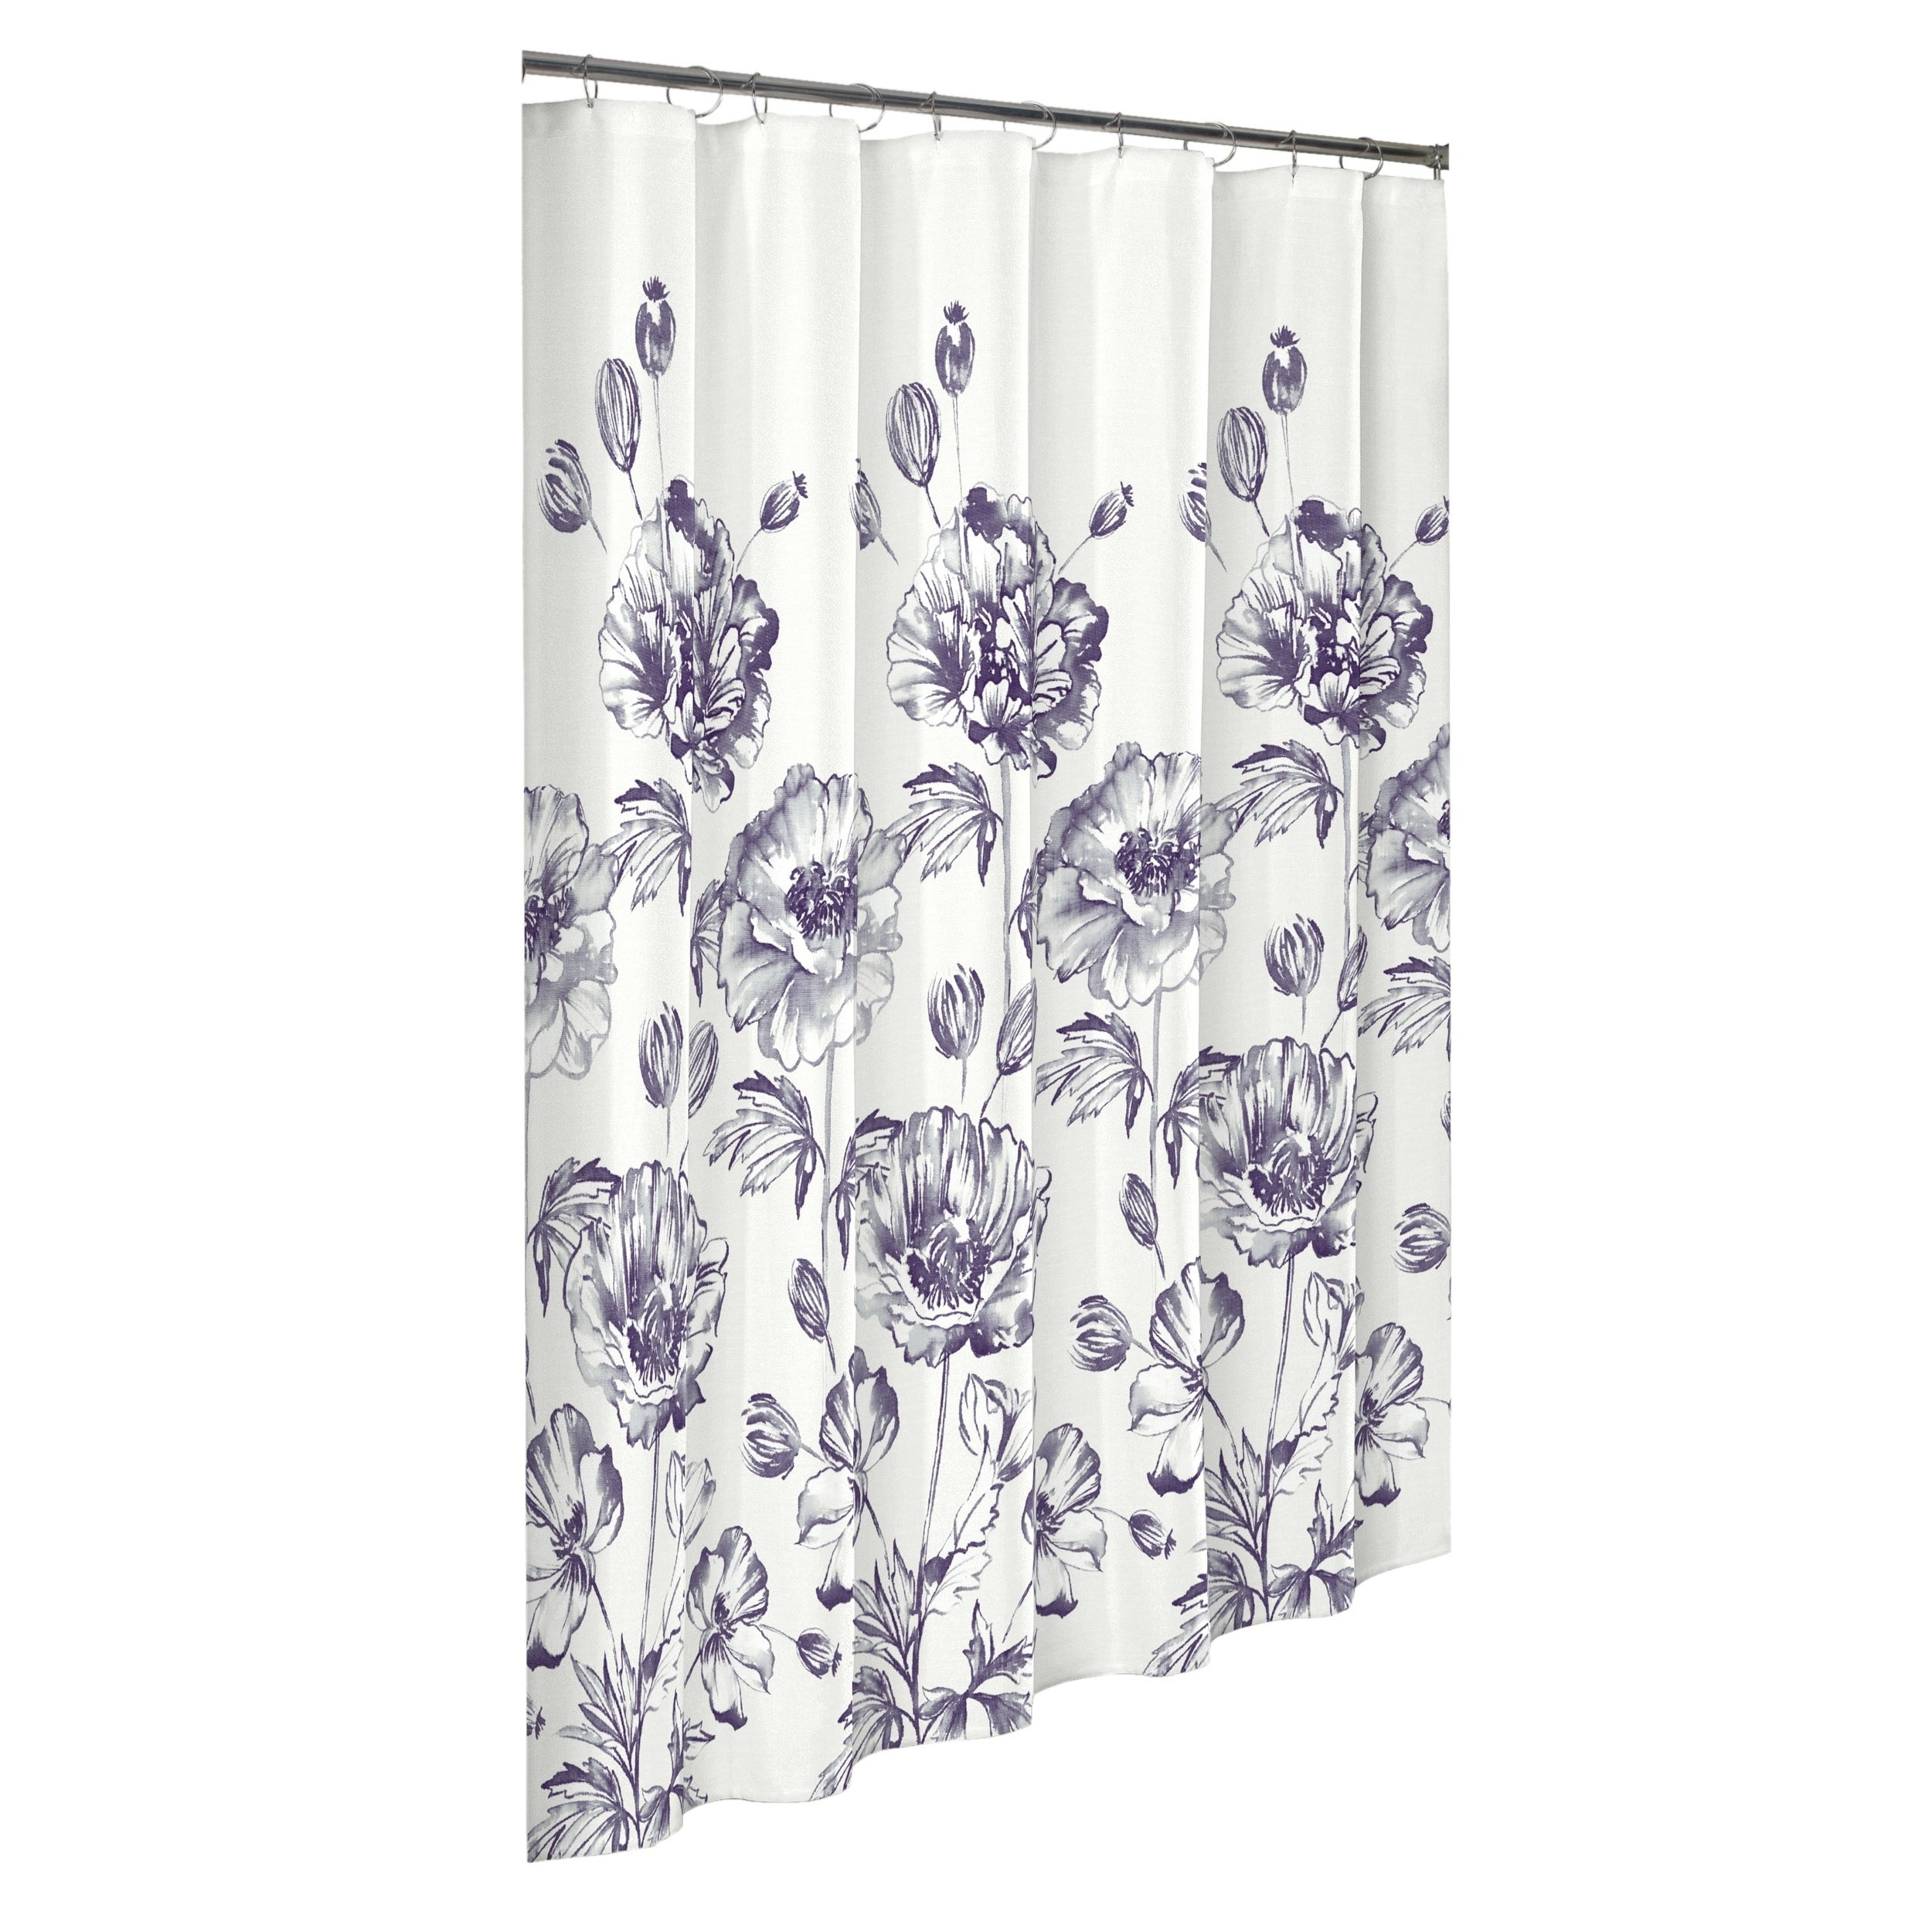 Marble Hill Jasmeen Shower Curtain Overstock 18236382